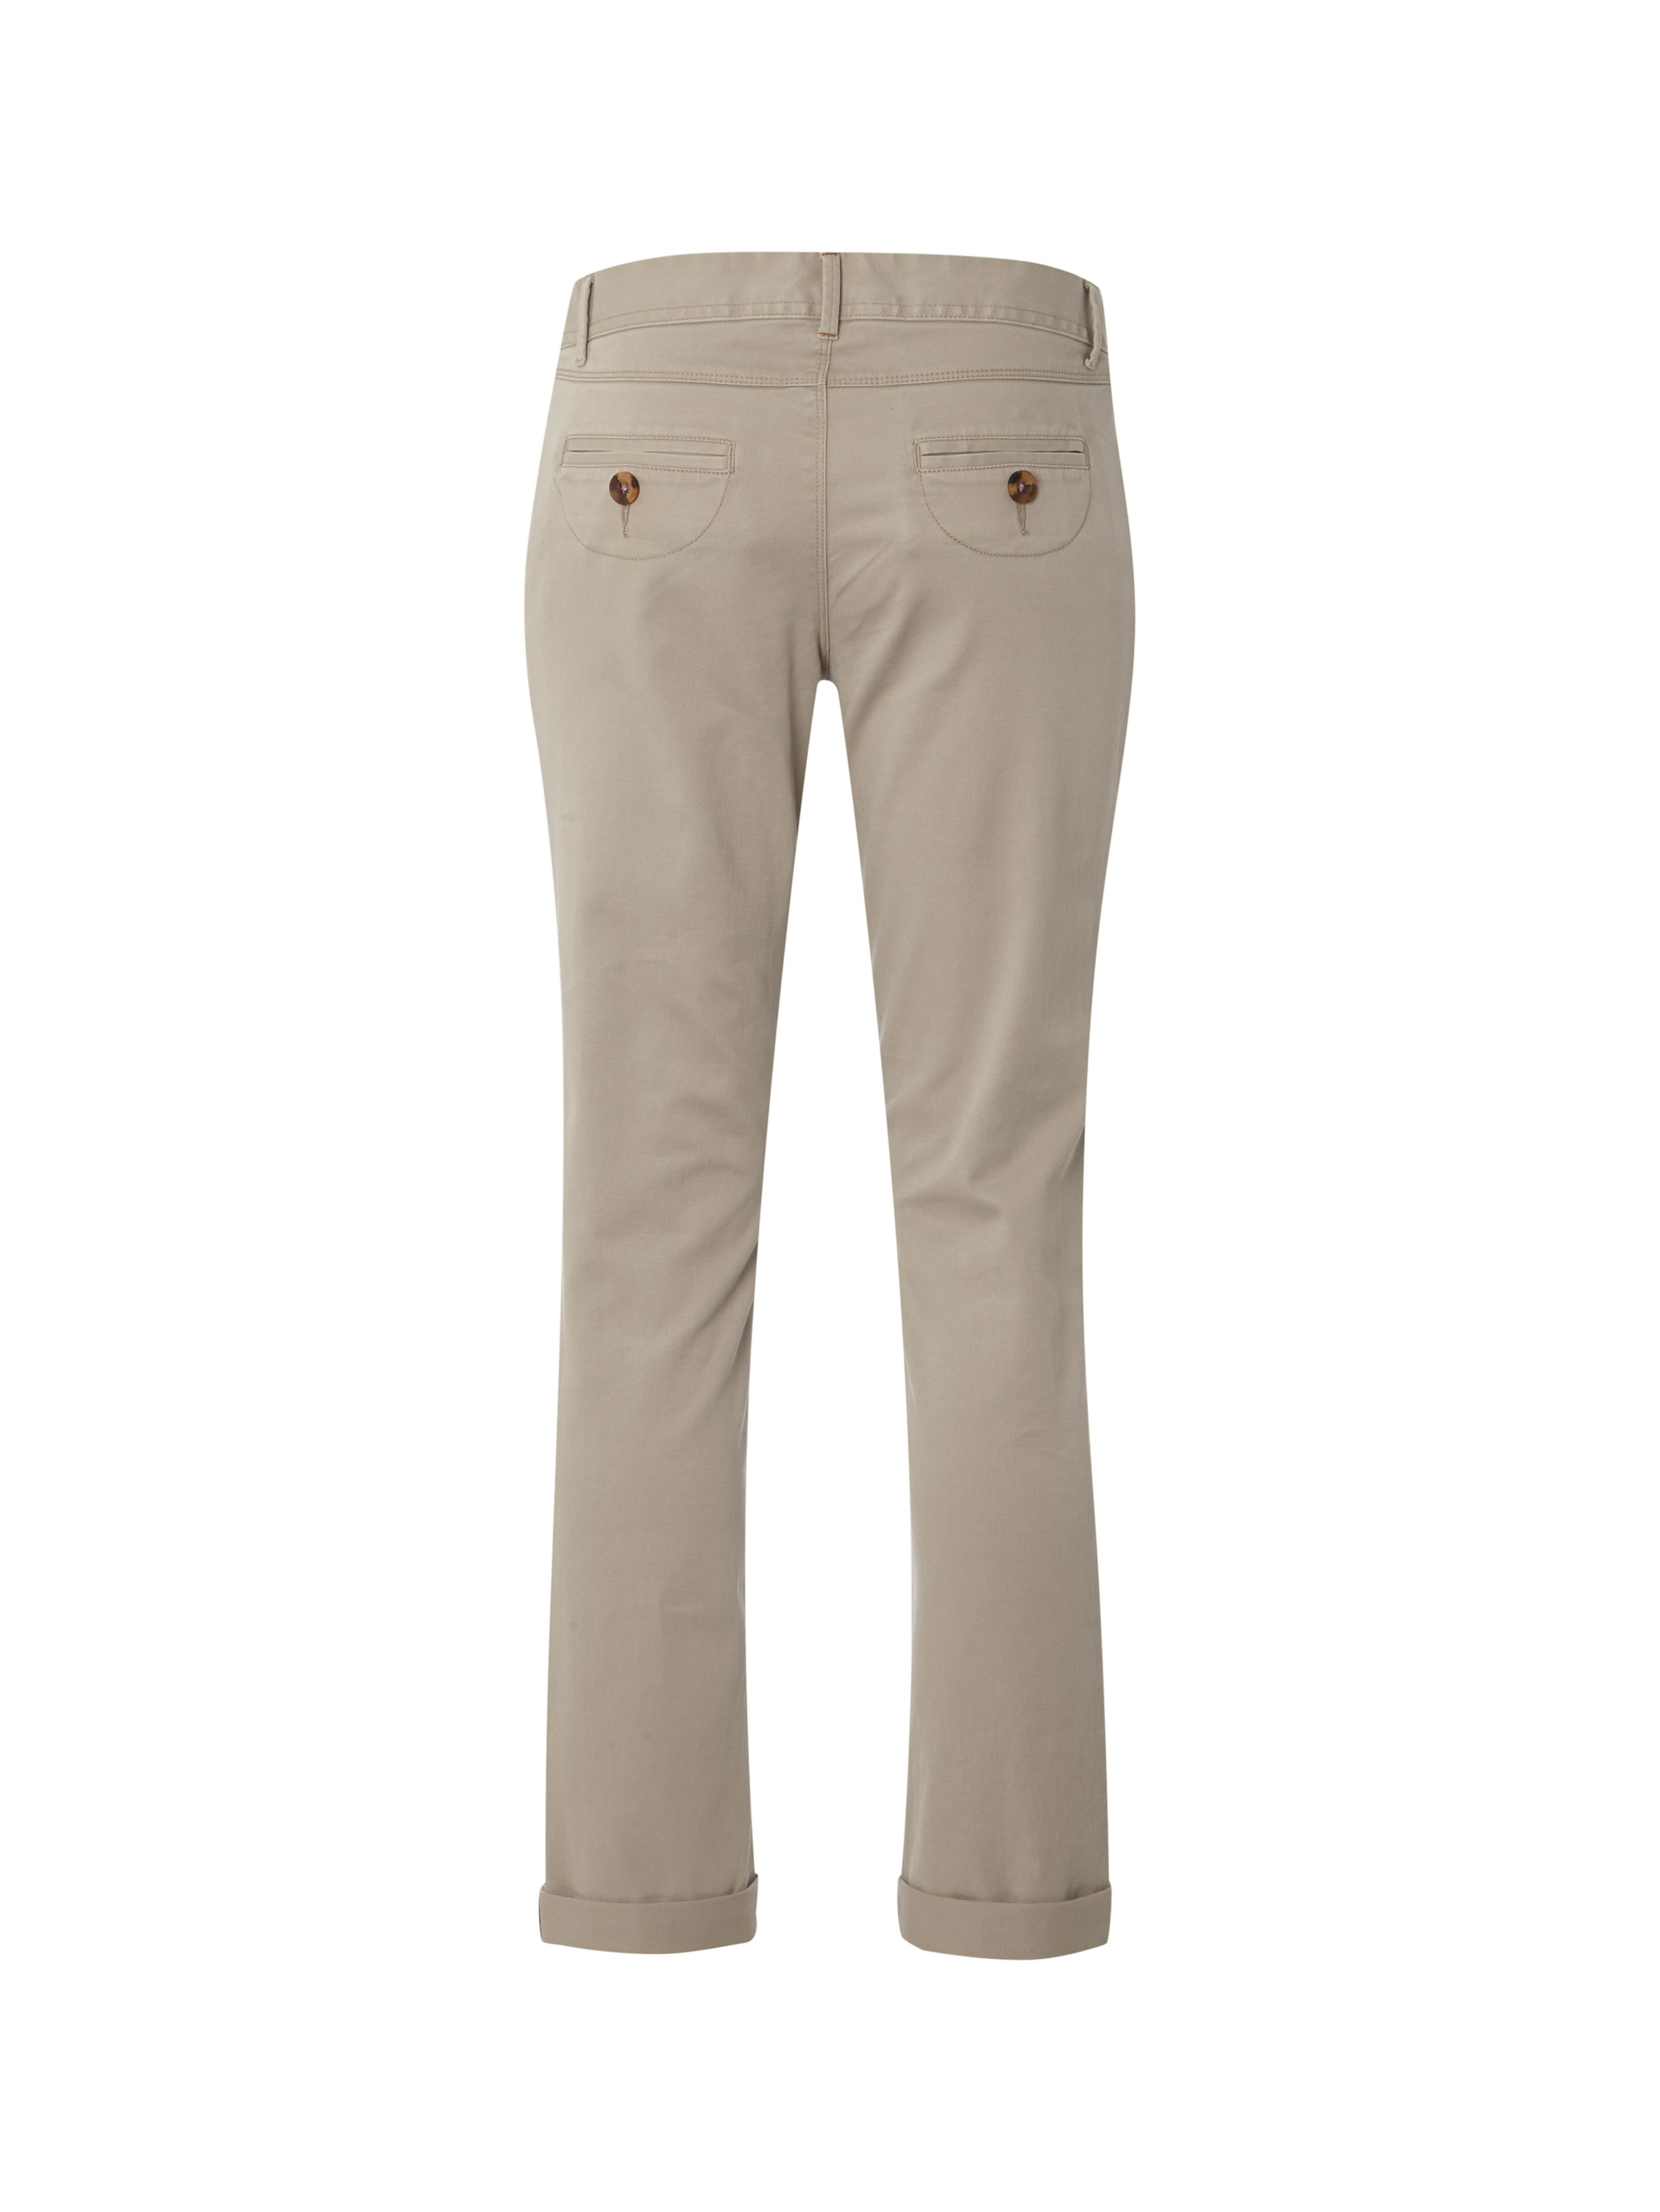 Day tripper tapered chino